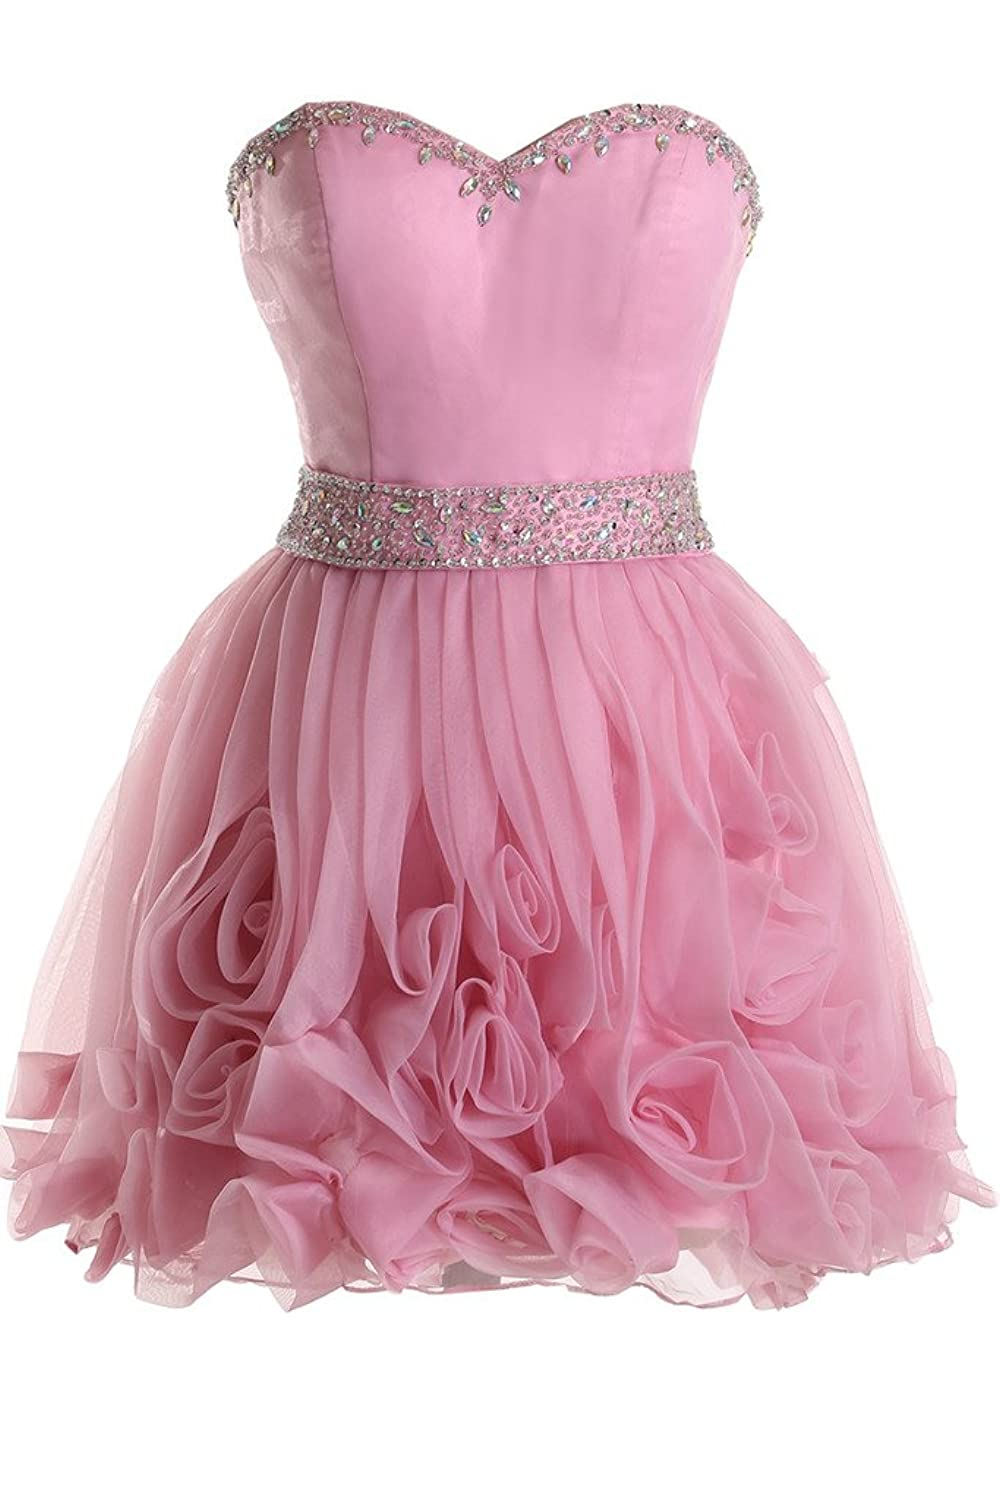 Sunvary Hot Sweetheart Short Homecoming Dresses Cocktail Dresses